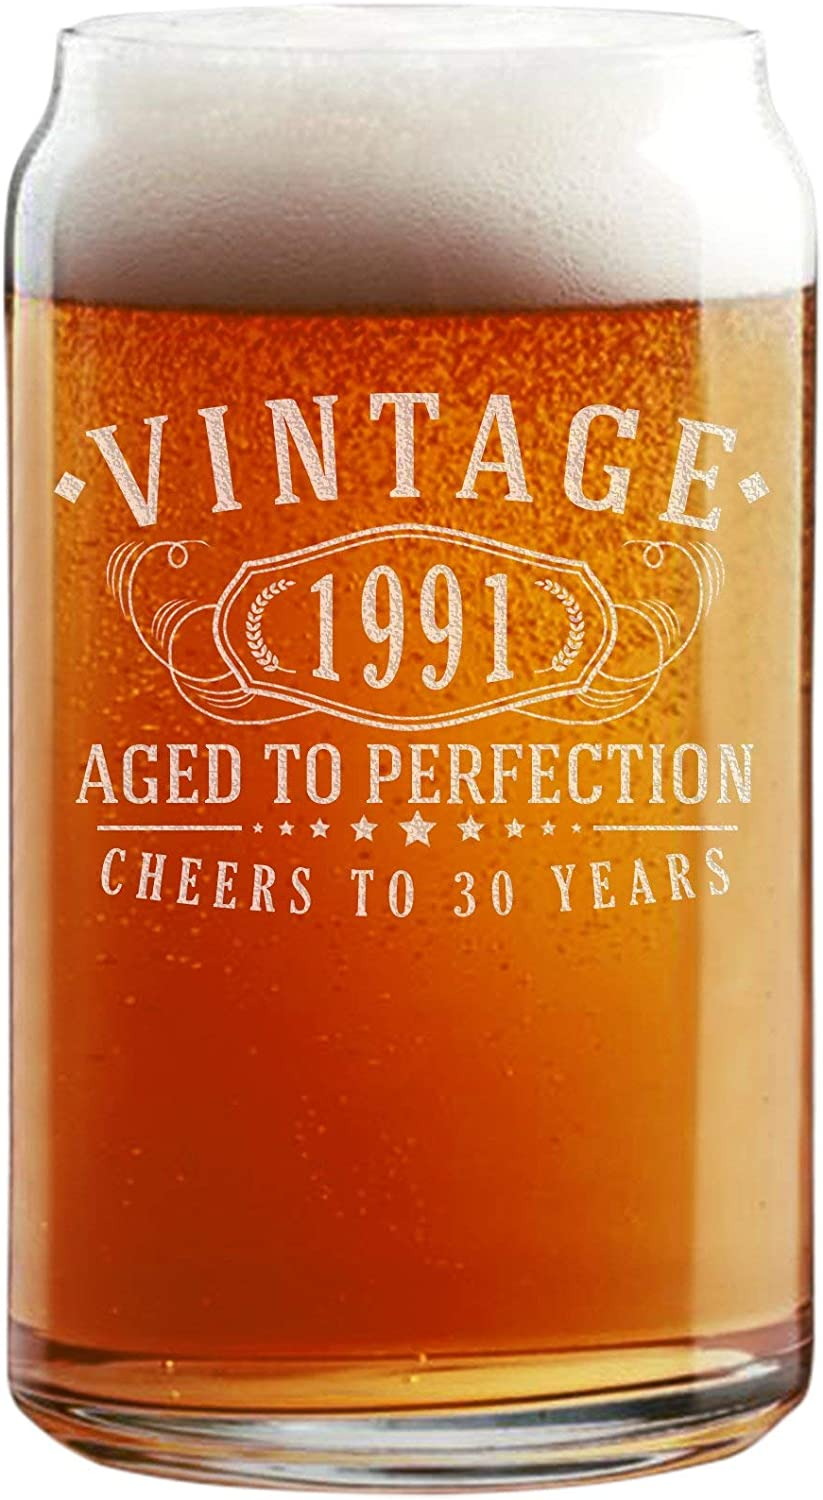 1991 Birthday Beer Glass for Sons 30th Birthday Gift for 30 Year Old 30th Birthday Gift for Men Pint Glass for Beer Lover